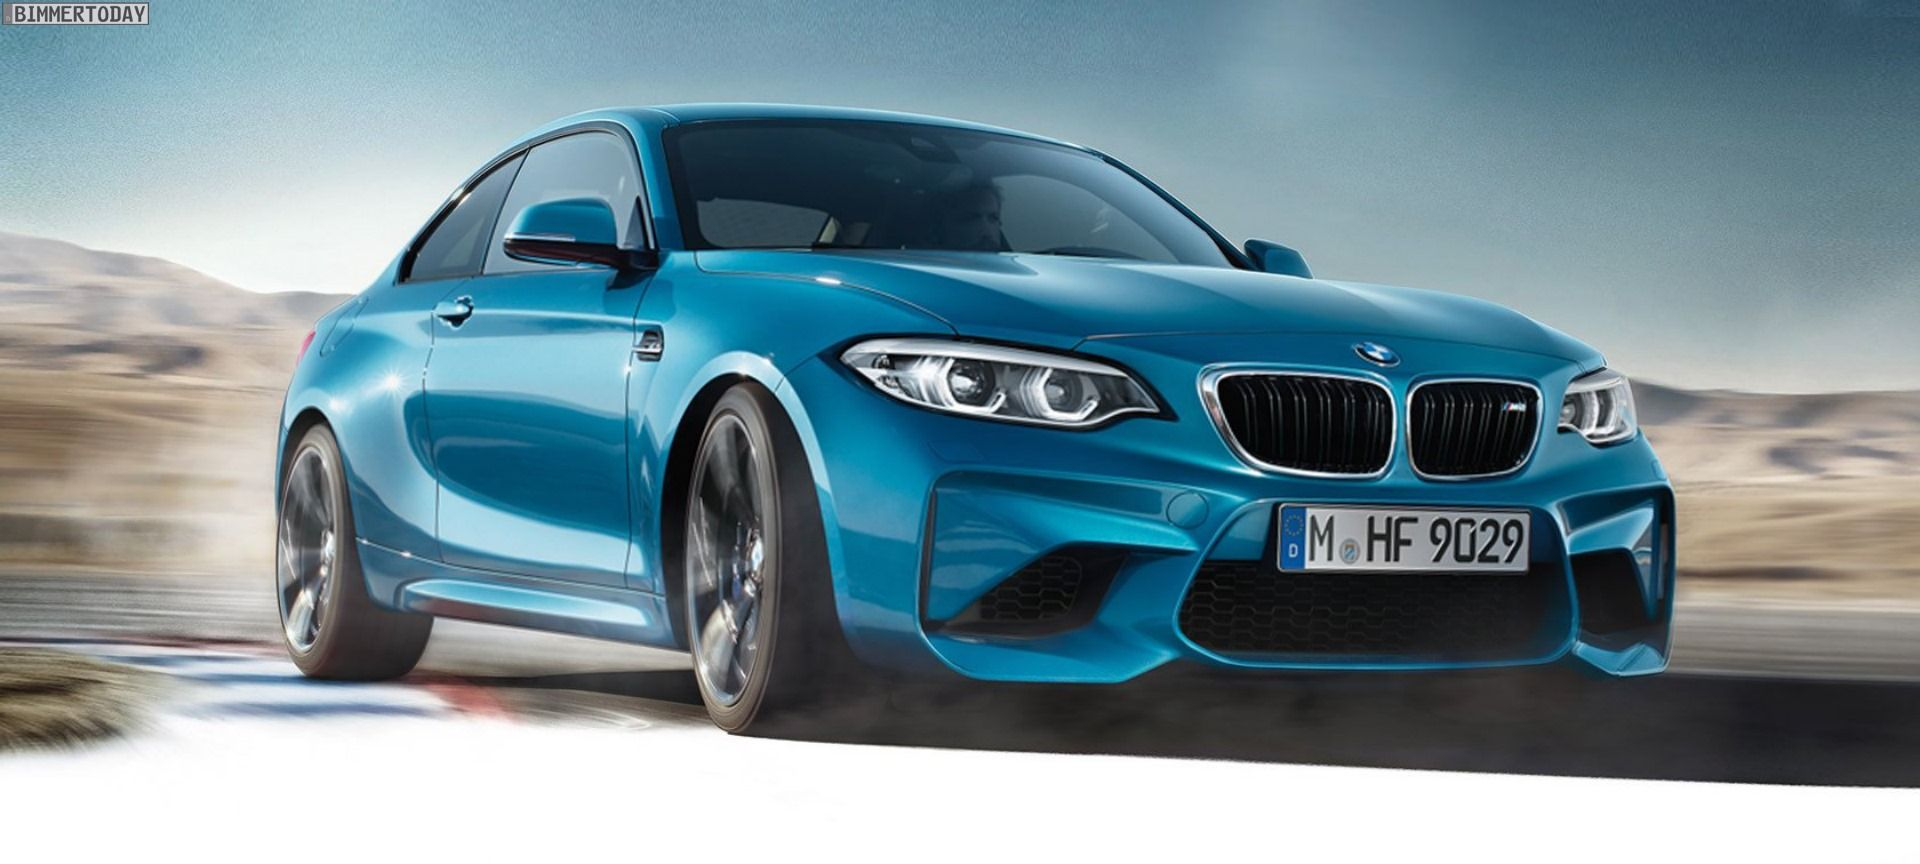 Leaked images of the 2017 bmw m2 facelift http www bmwblog